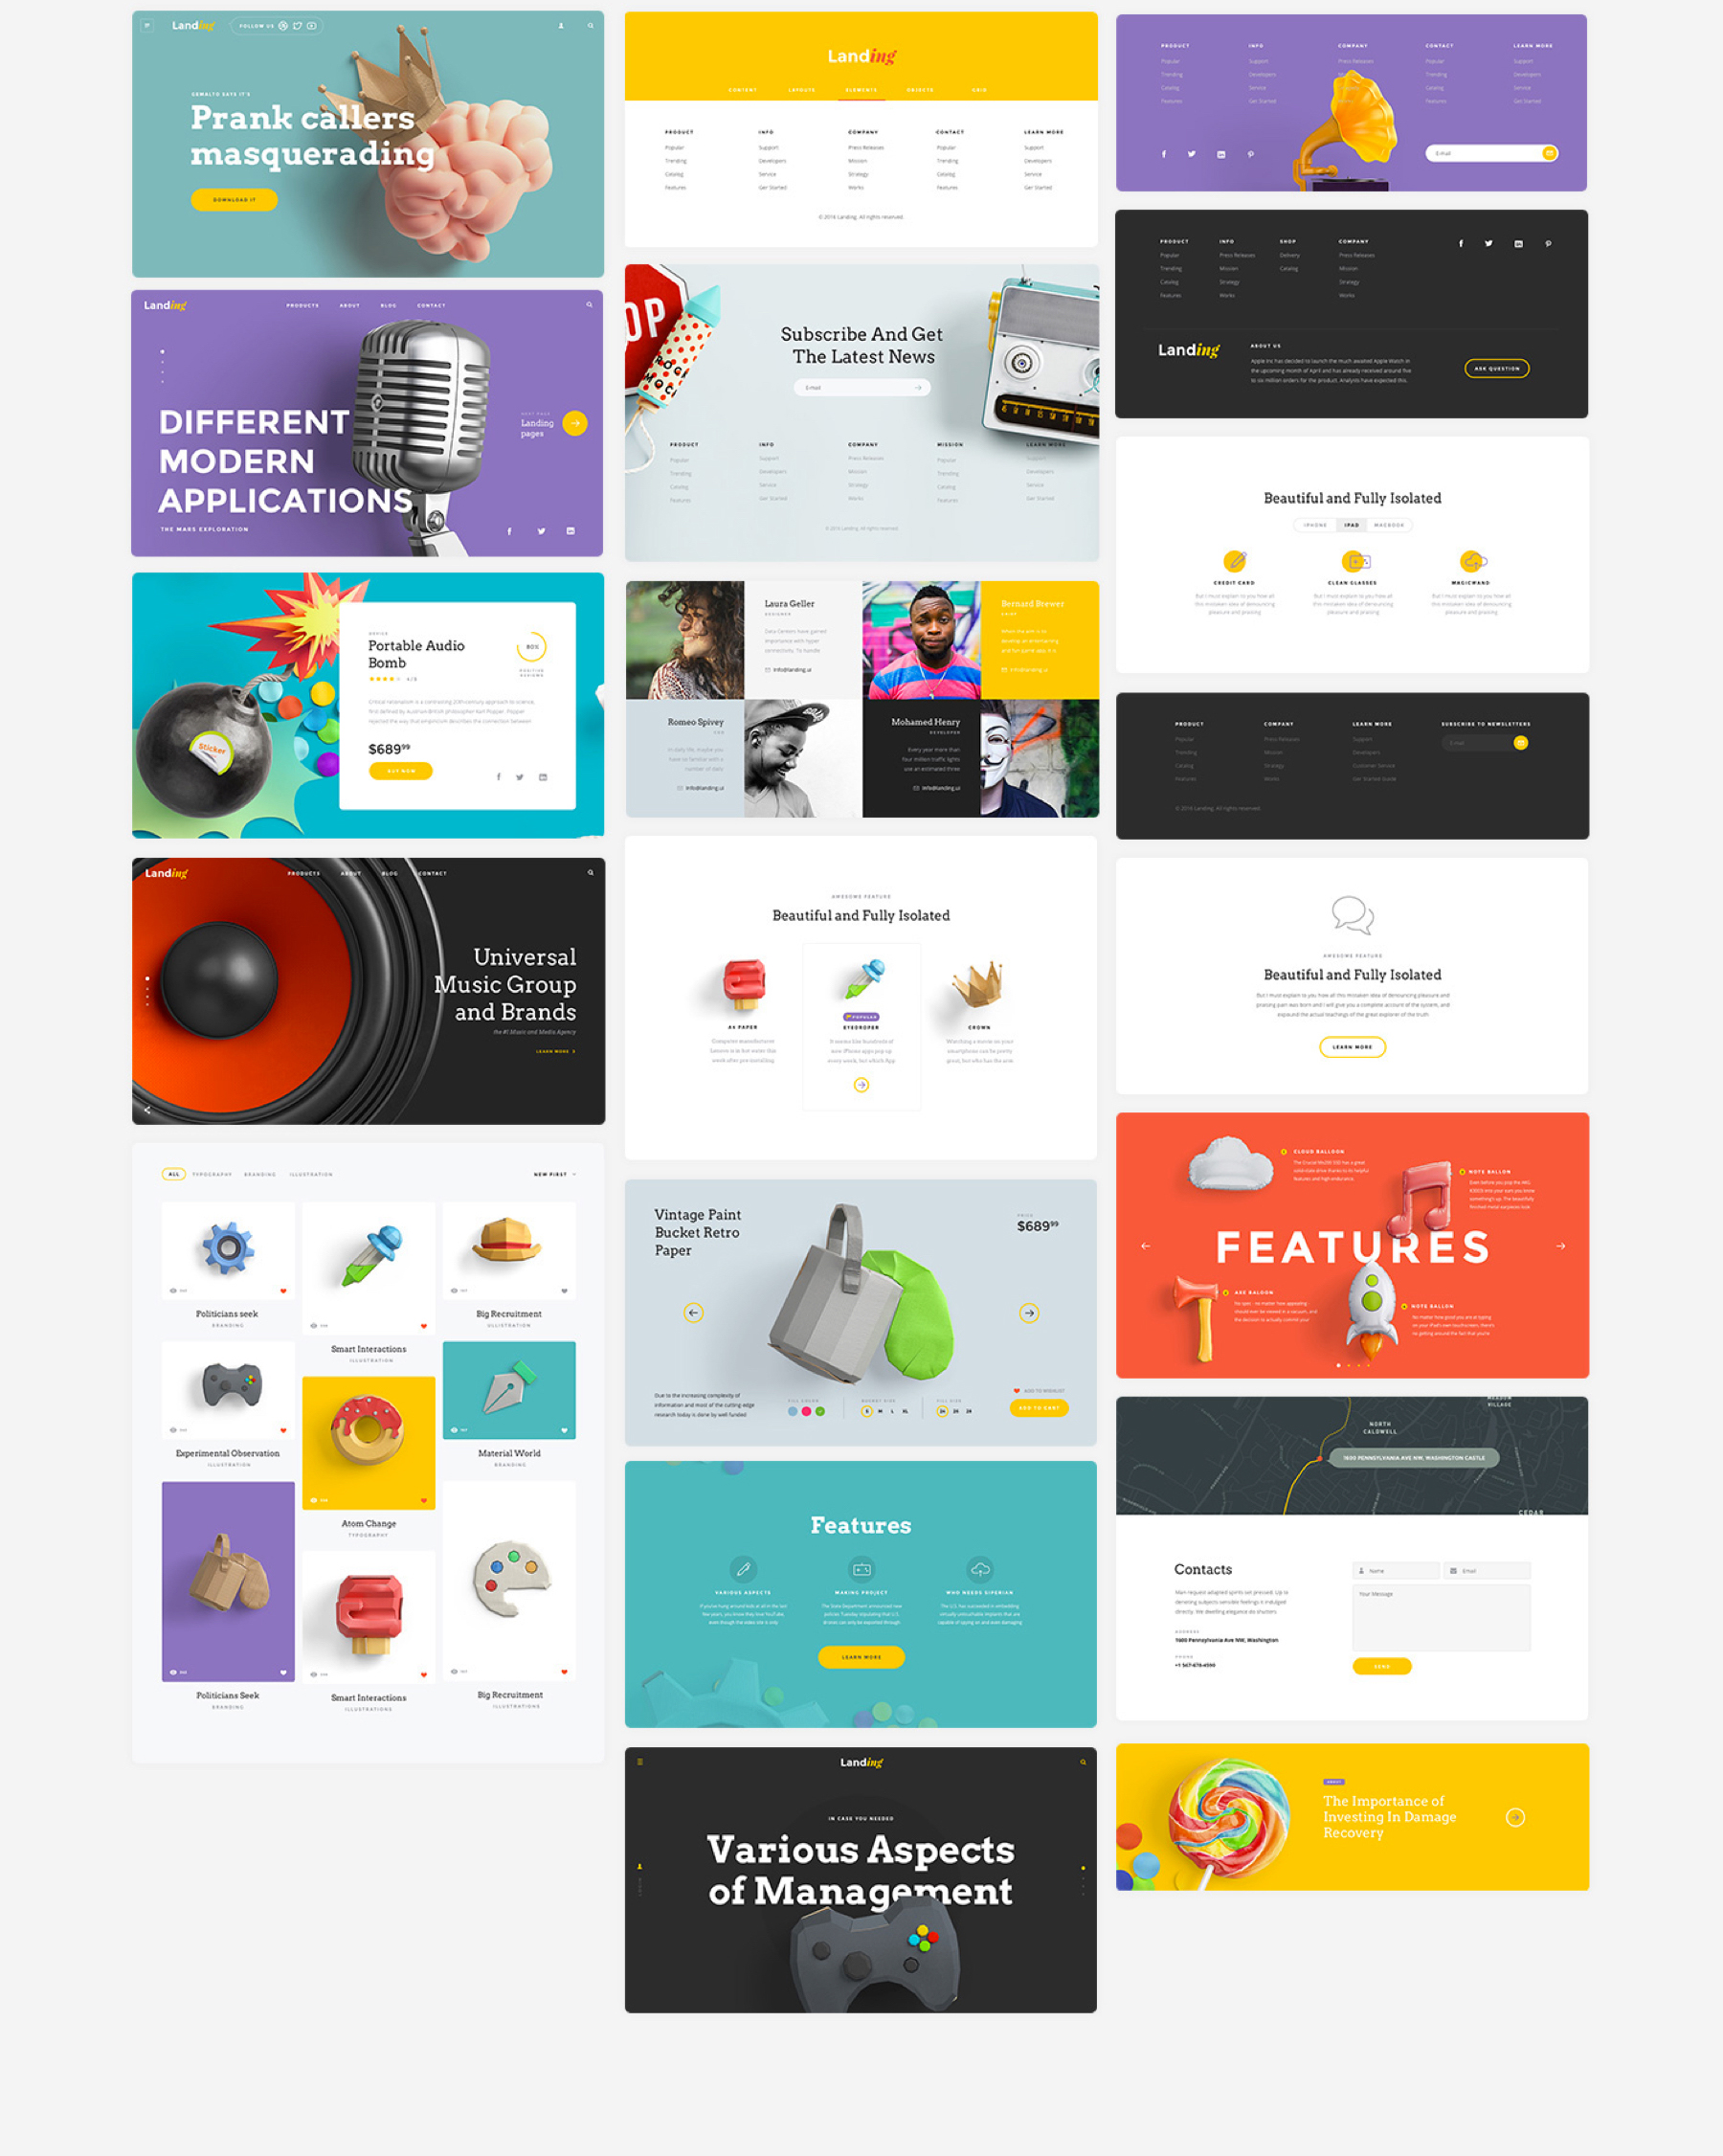 Free UI Kit for landing pages